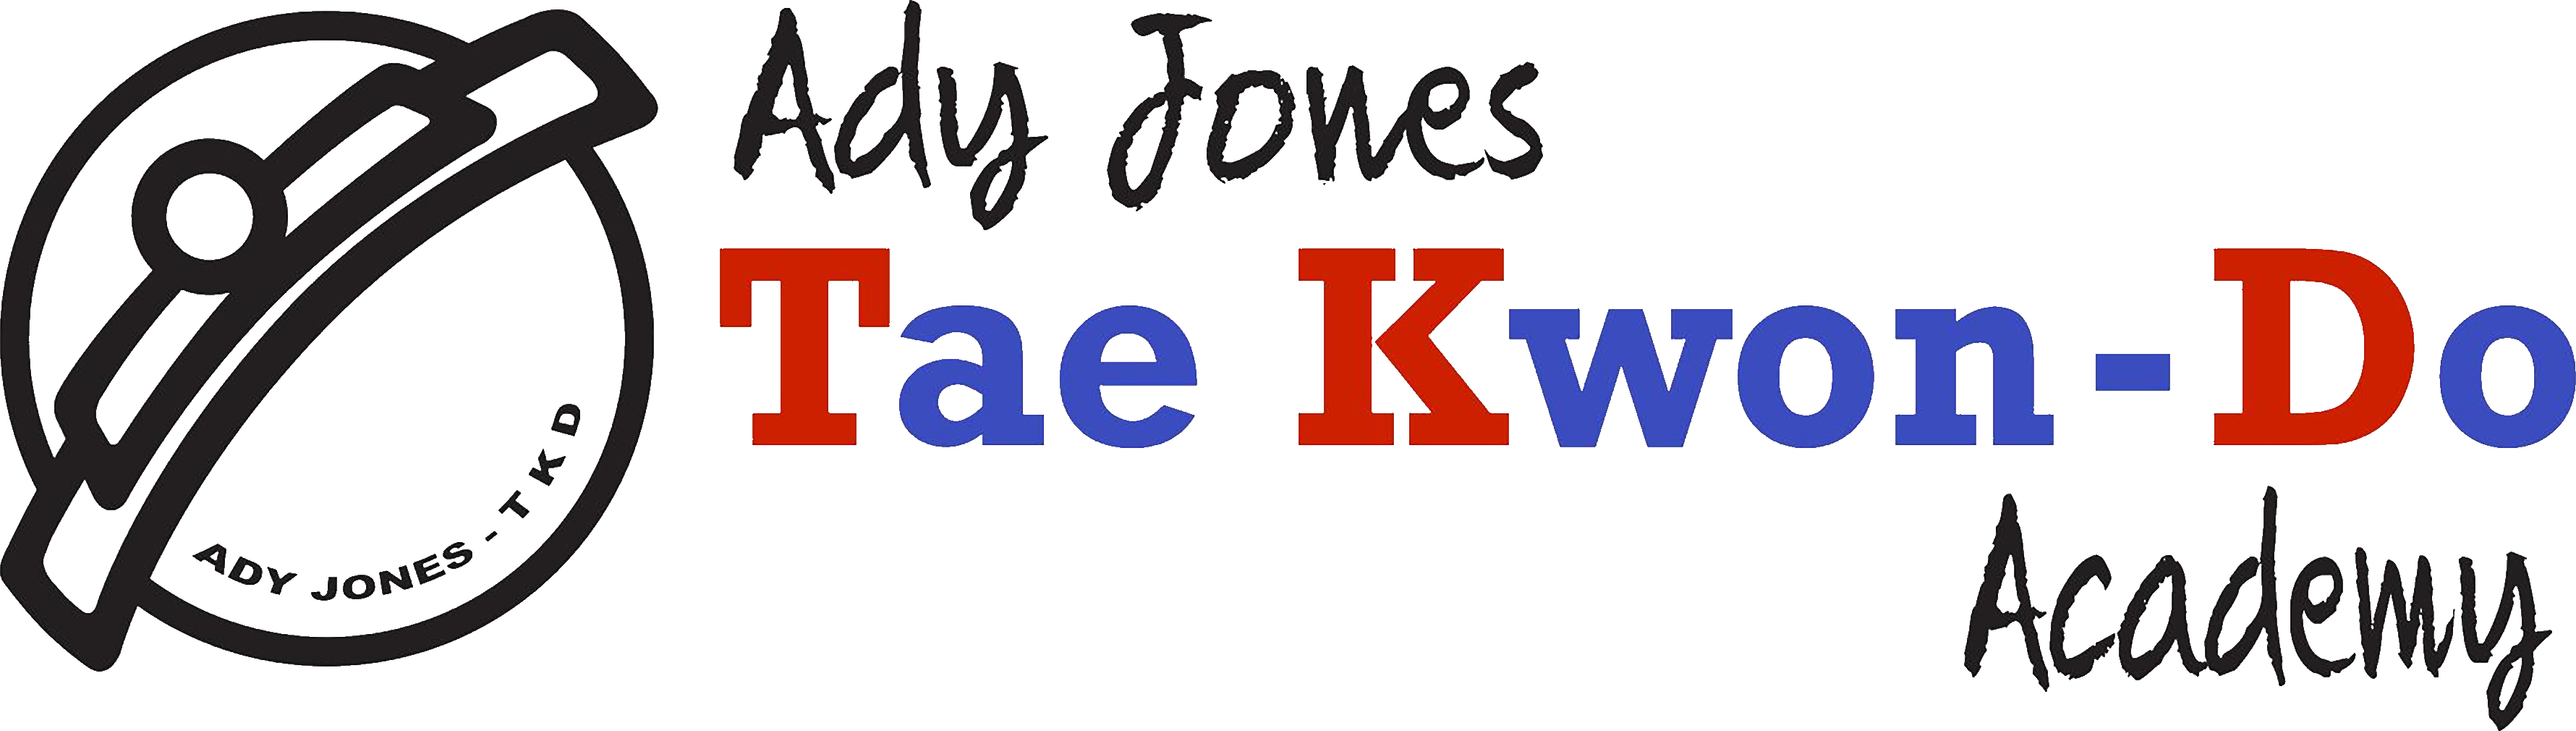 Ady Jones Taekwondo Academy Members Website - Martial Arts Classes in Wrexham